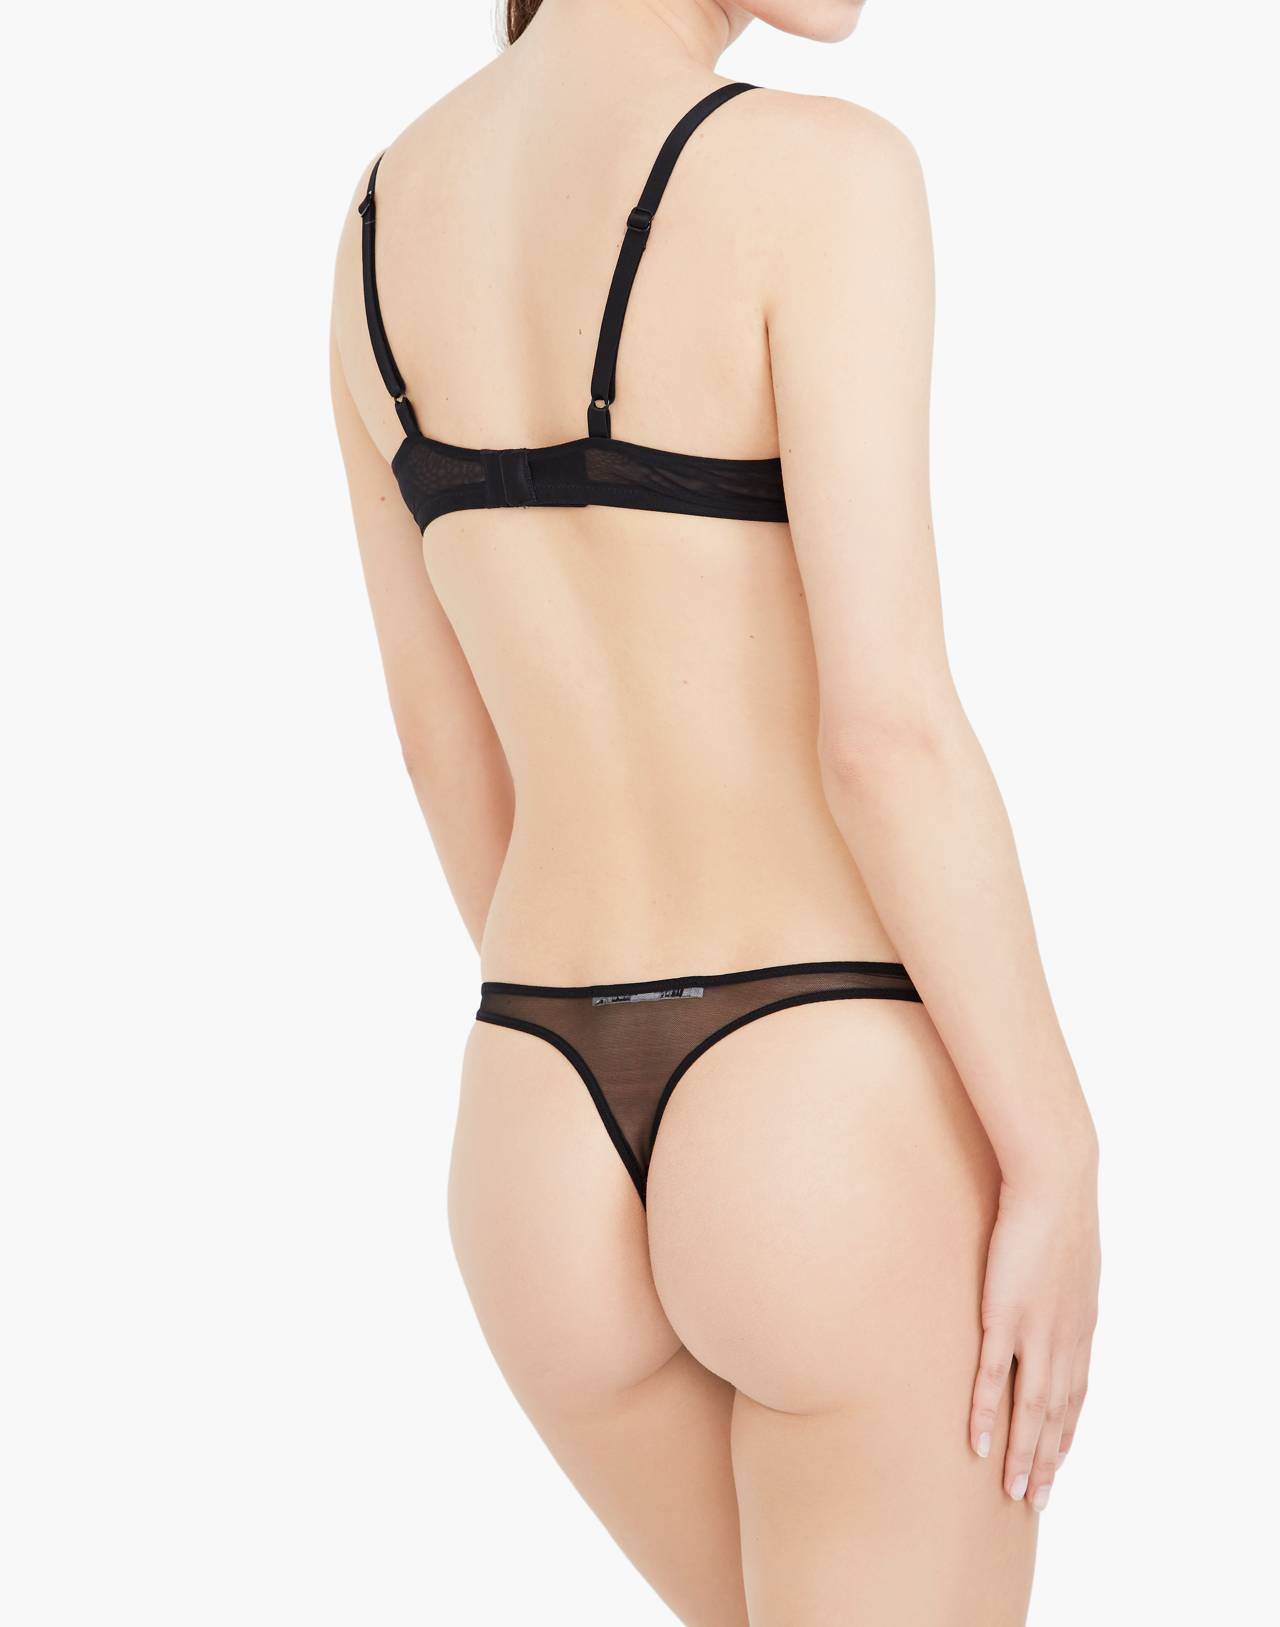 The Great Eros® Canova Thong in black image 3